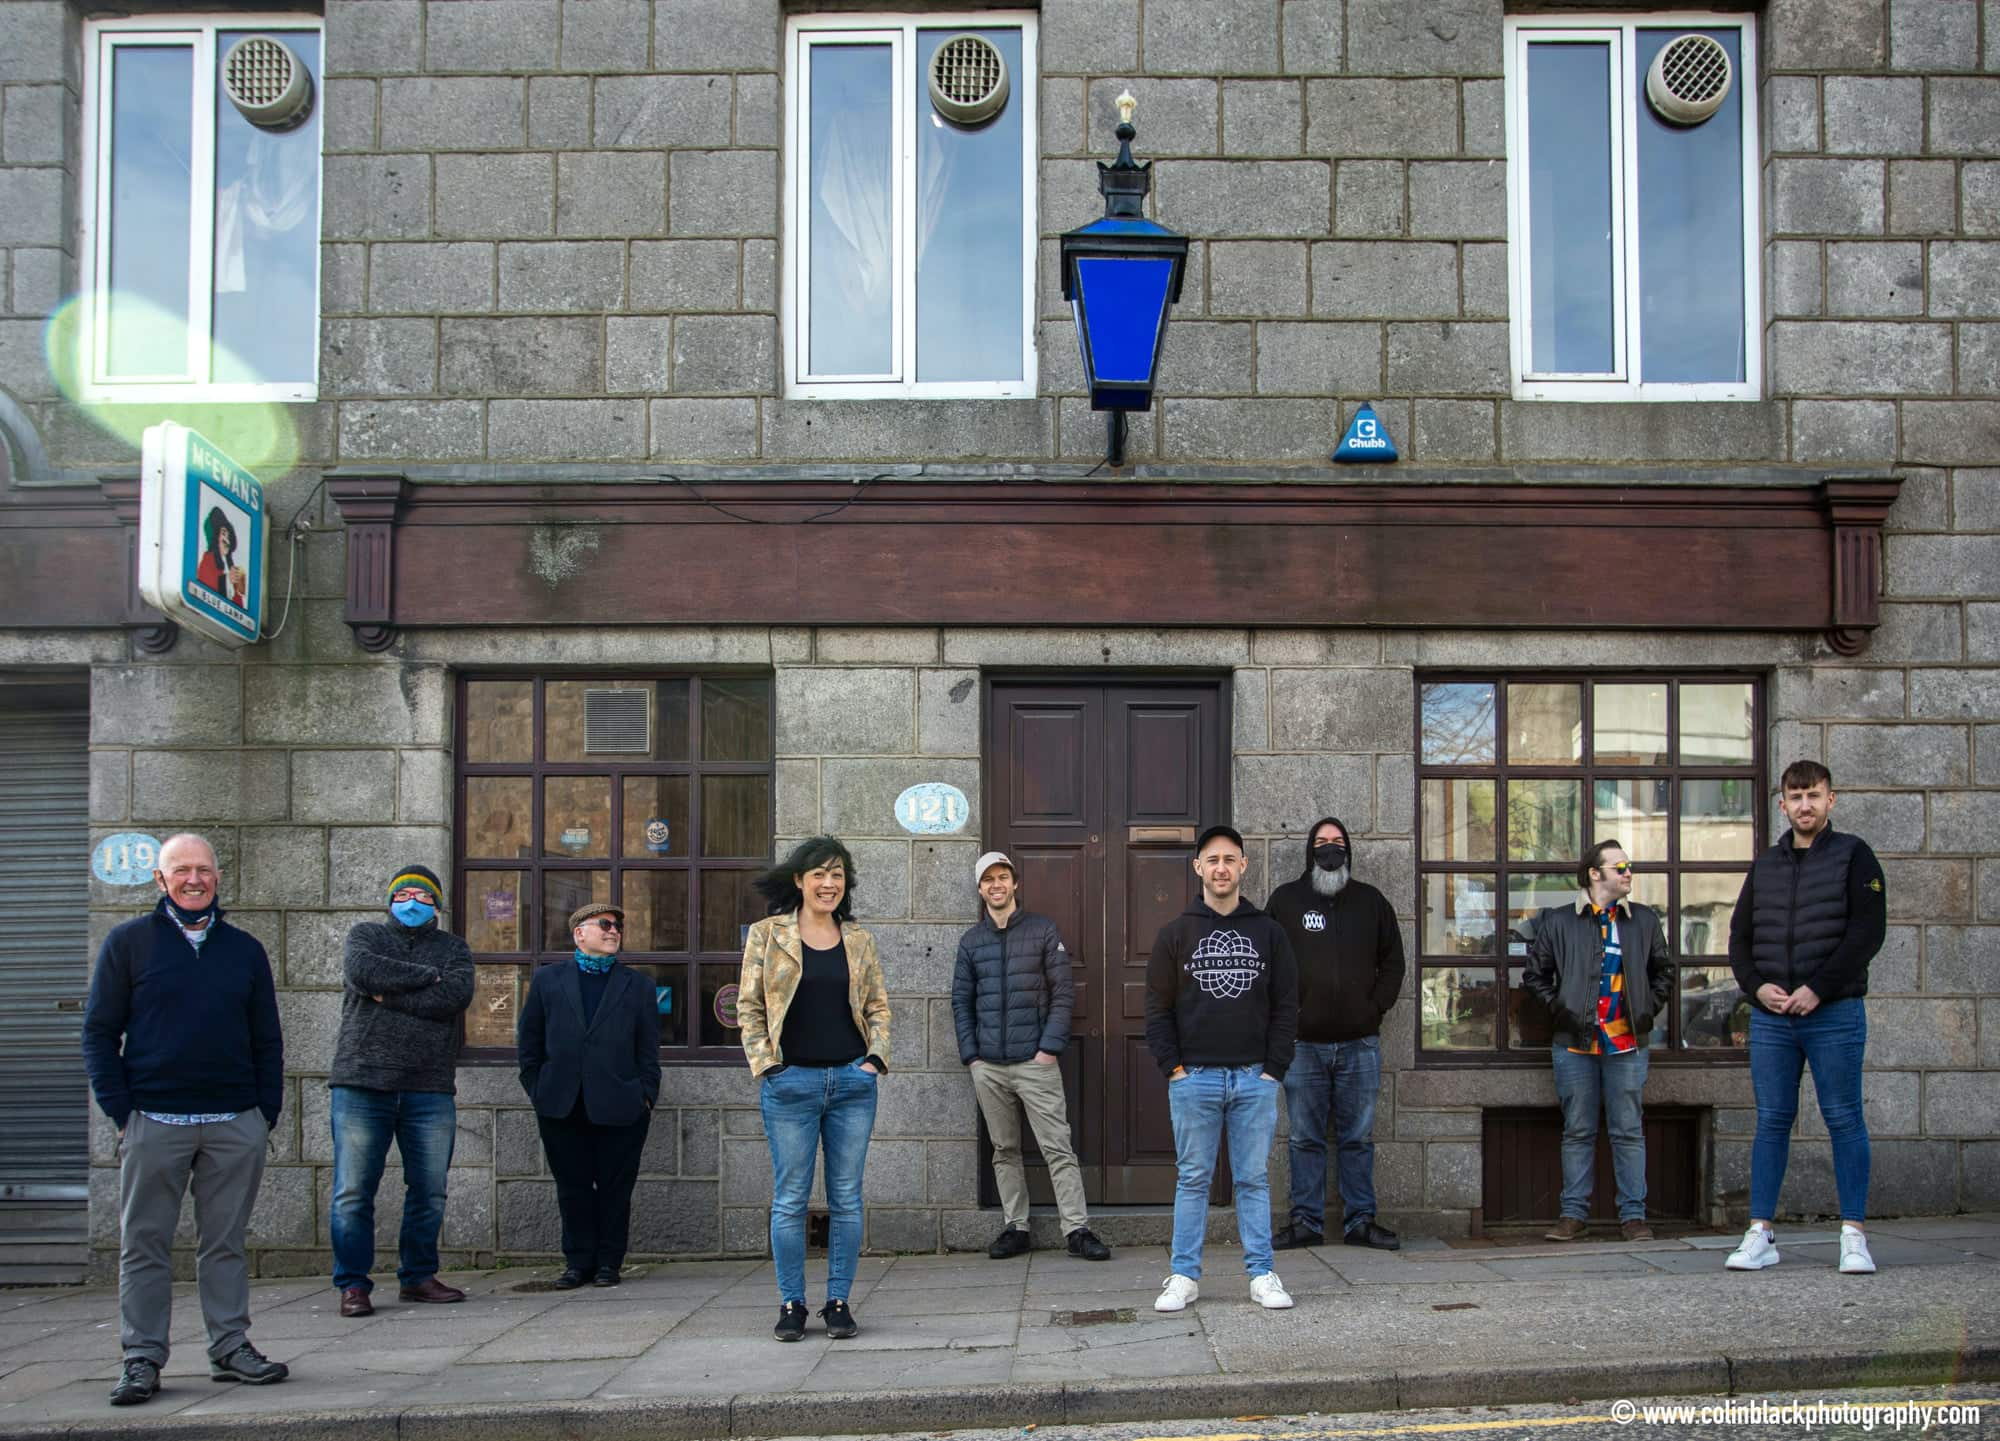 Aberdeen Jazz Festival crew standing outside of a venue smiling.